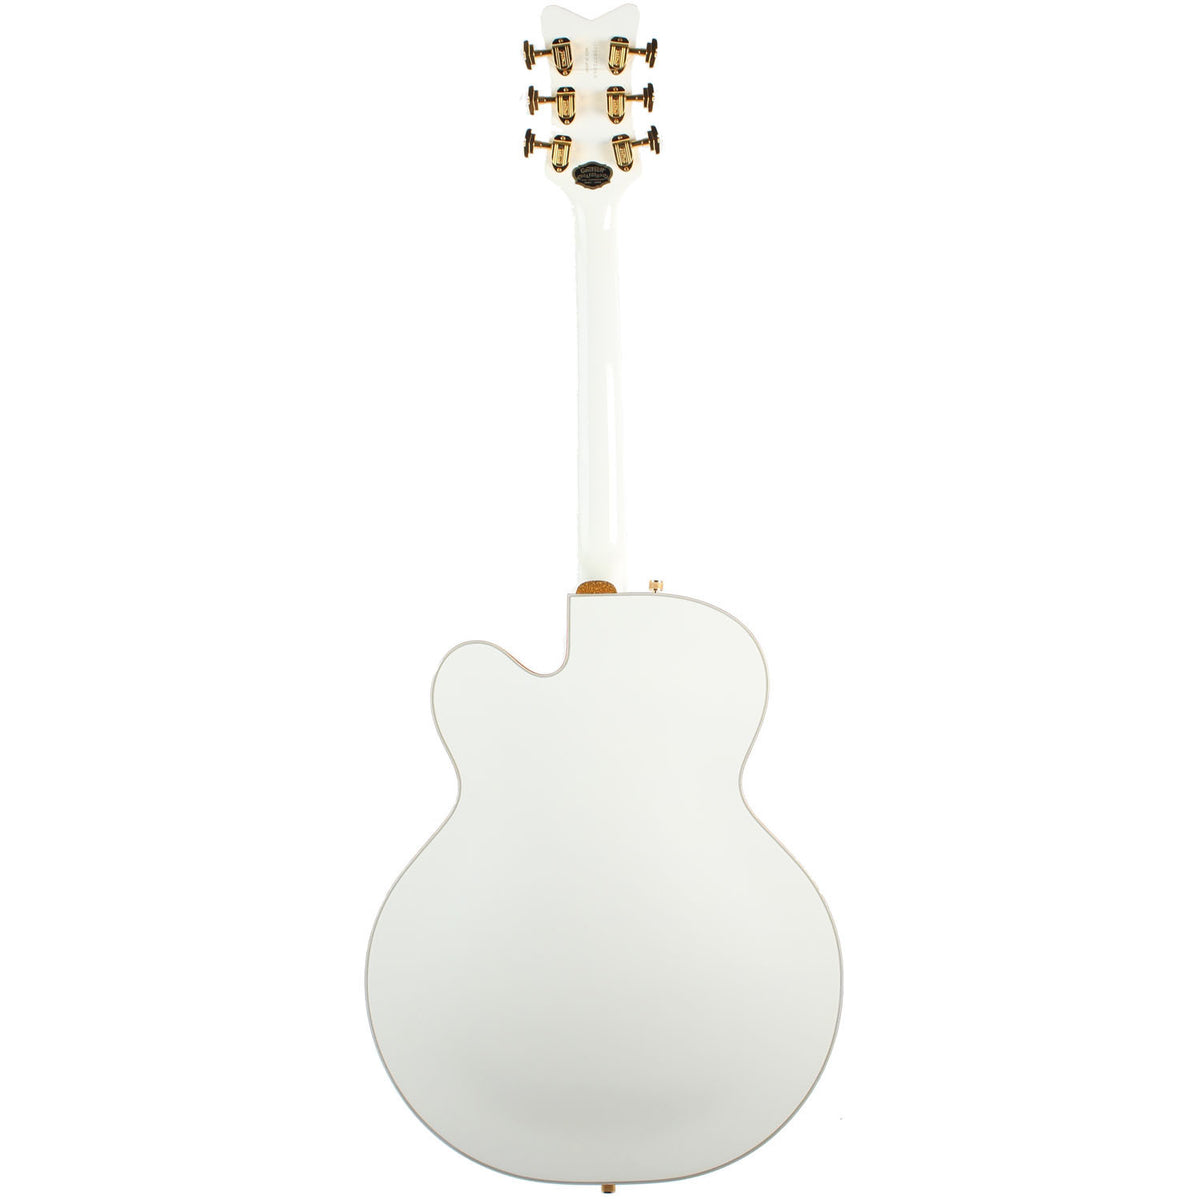 2008 Gretsch White Falcon G6136T - Garrett Park Guitars  - 6